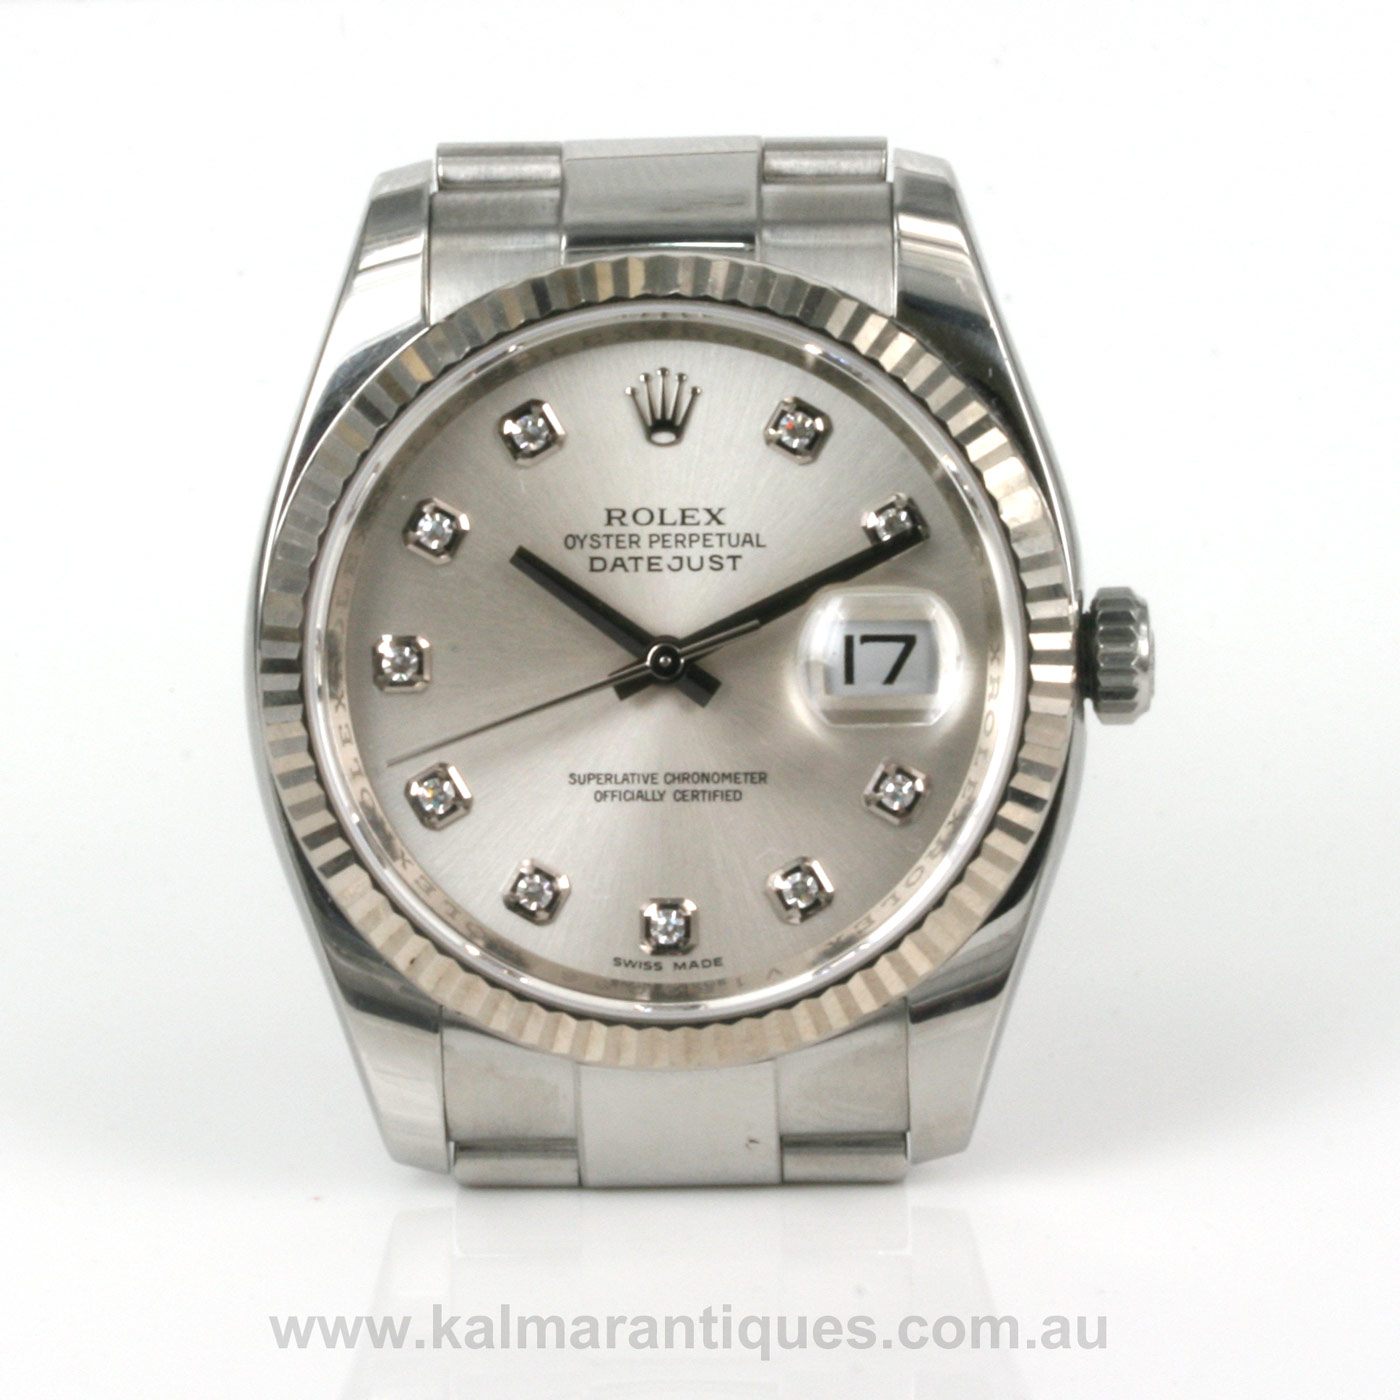 Buy Rolex Oyster Perpetual Diamond Dial Datejust Model